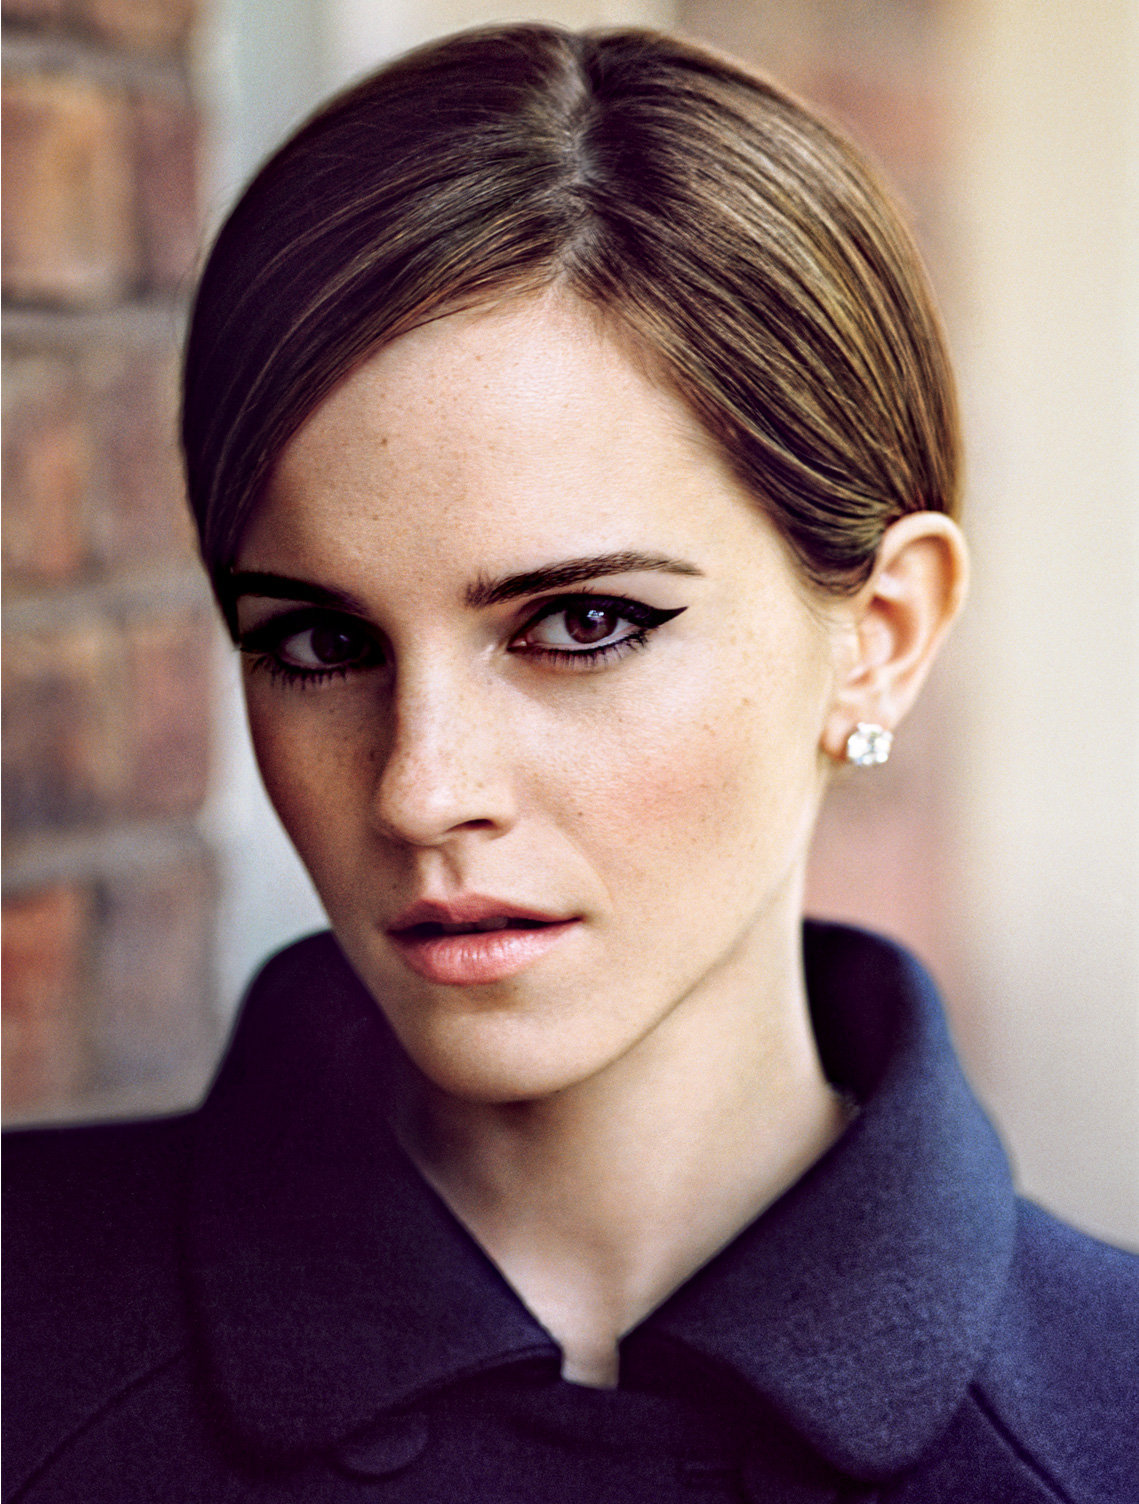 tmagazine:  Emma Watson is the face of our fall women's issue. Get to know the British actress.